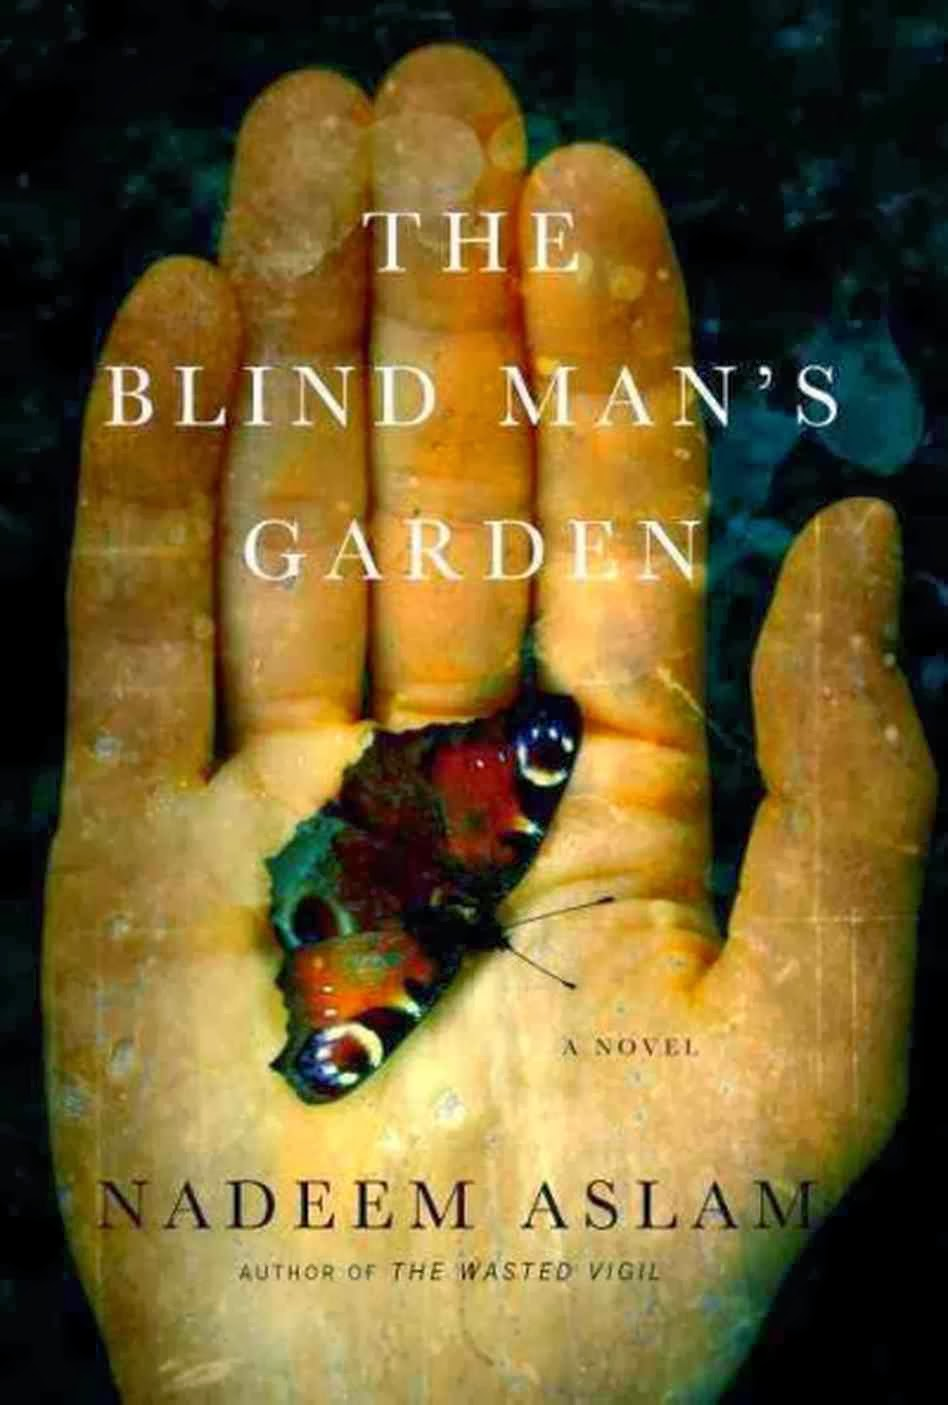 http://discover.halifaxpubliclibraries.ca/?q=title:blind%20man%27s%20garden